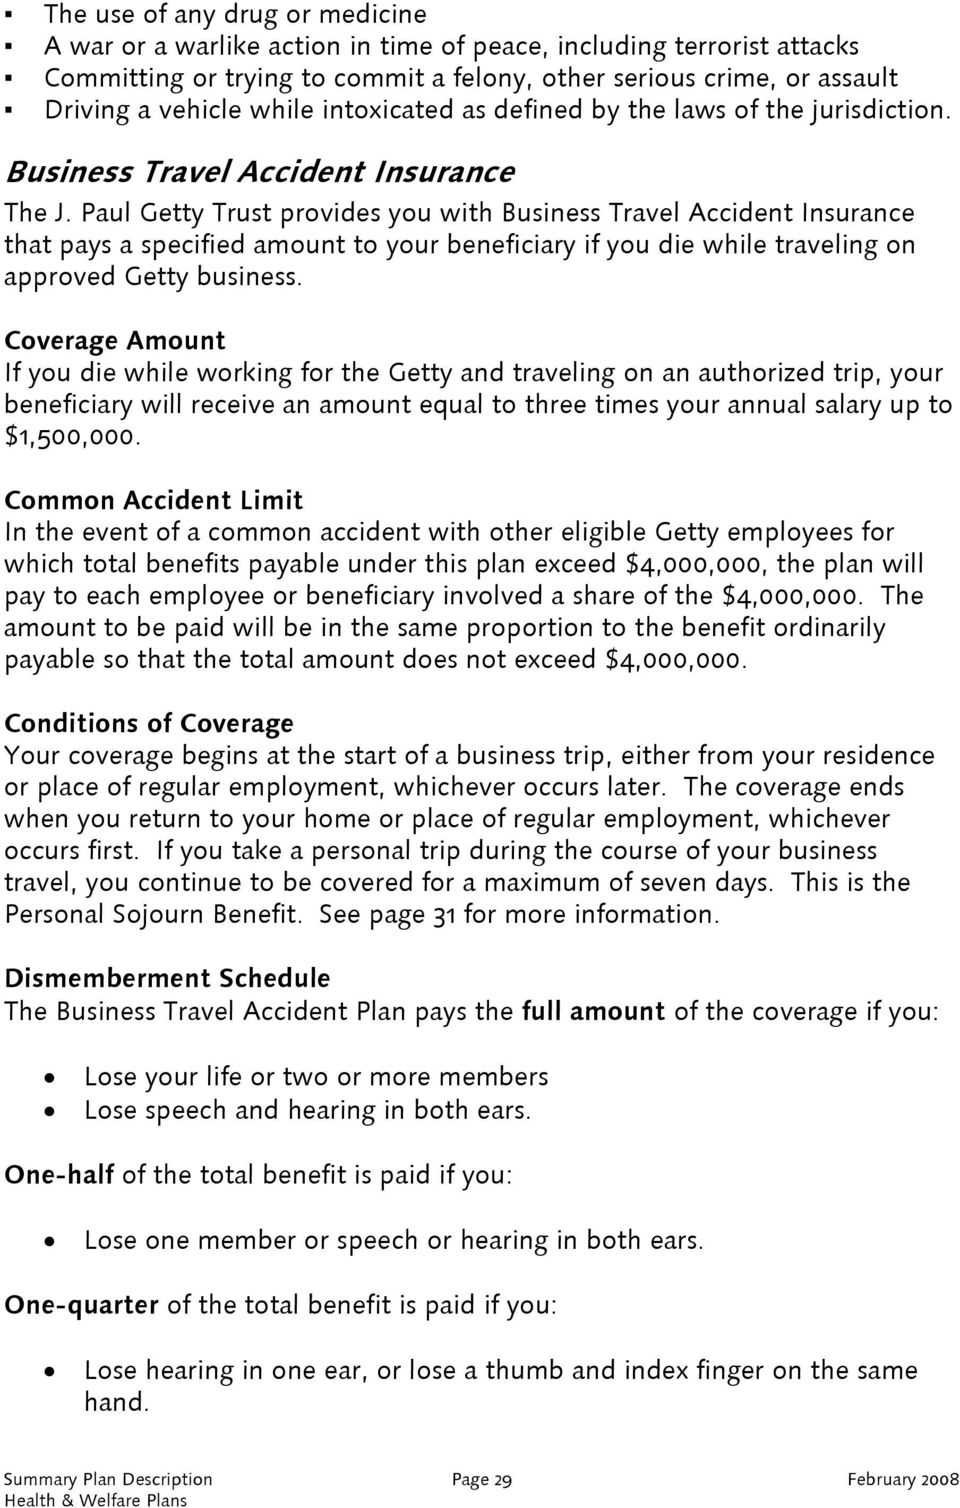 Paul Getty Trust provides you with Business Travel Accident Insurance that pays a specified amount to your beneficiary if you die while traveling on approved Getty business.